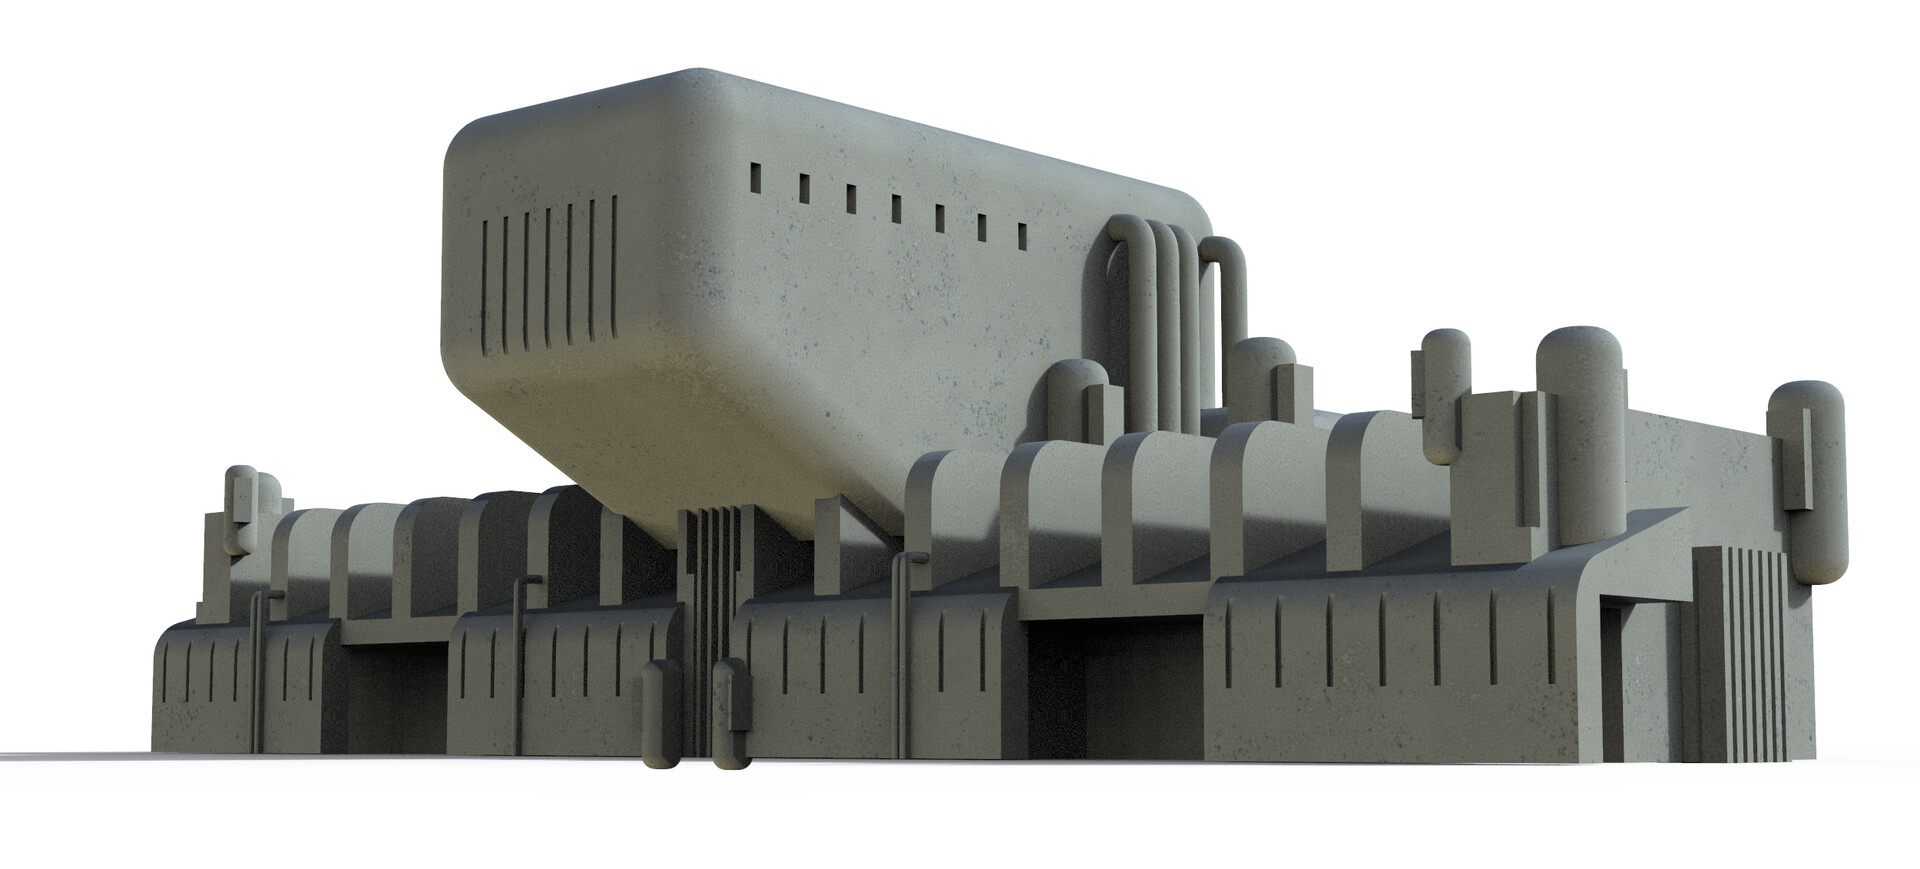 MoI model of background structure